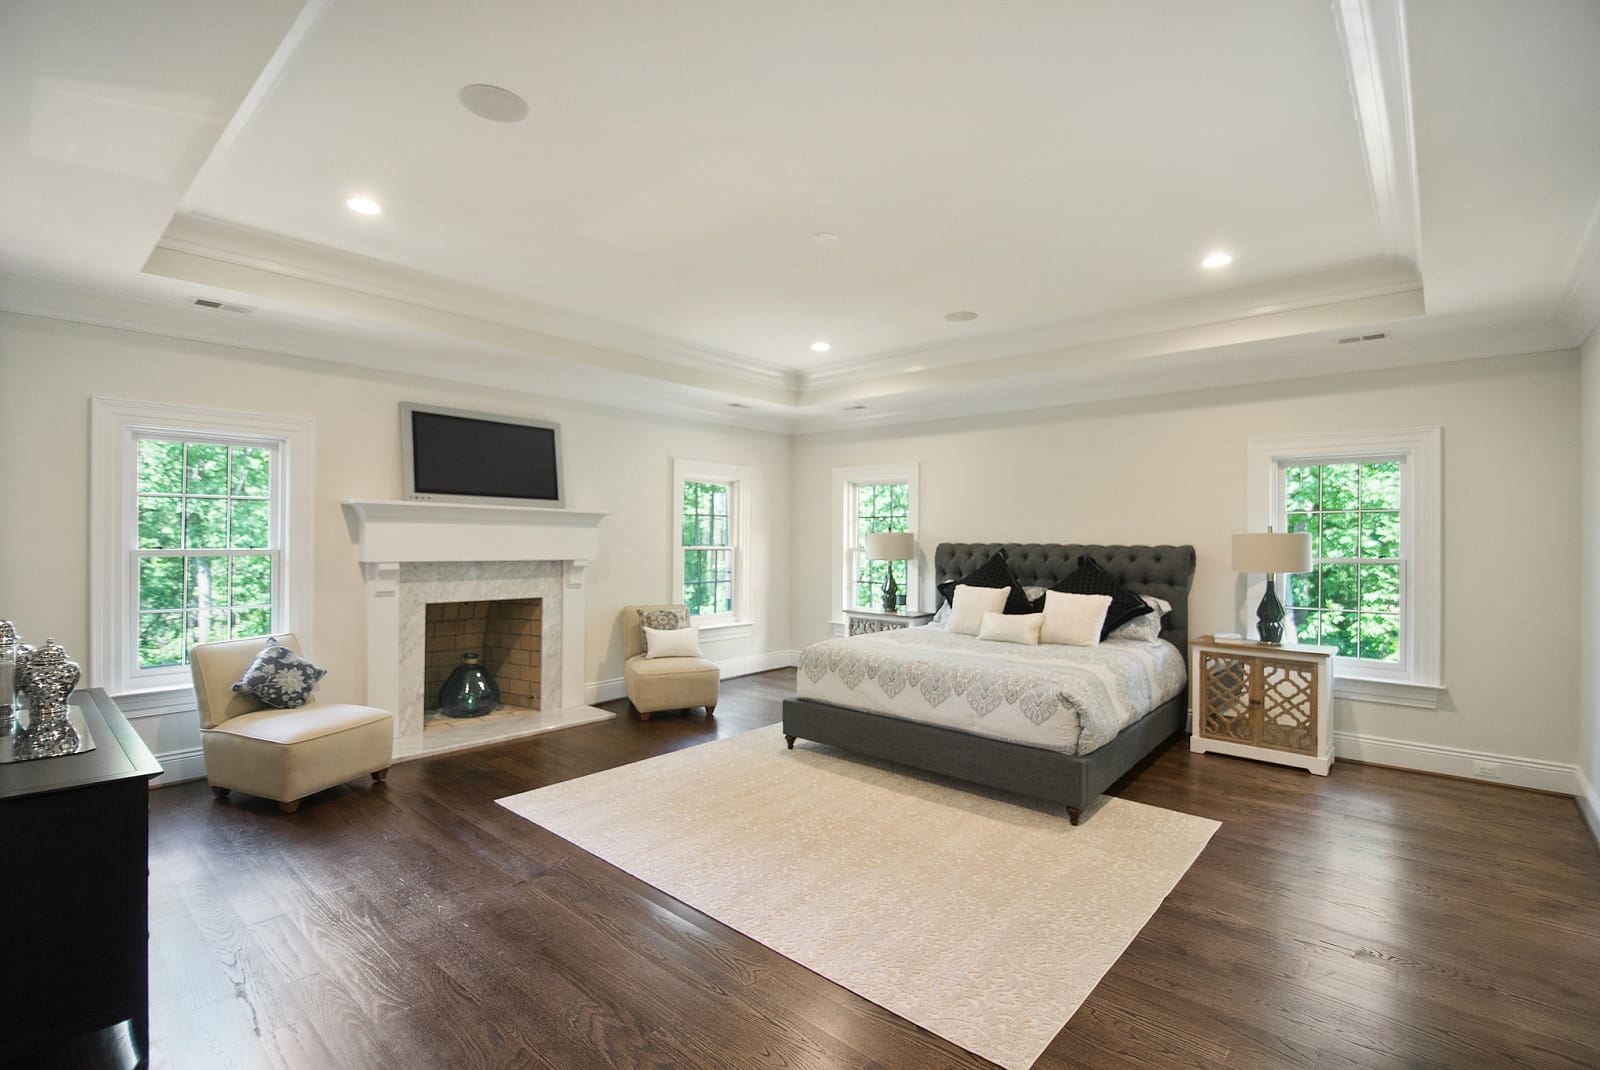 Real Estate Photography in Arlington - Bedroom View